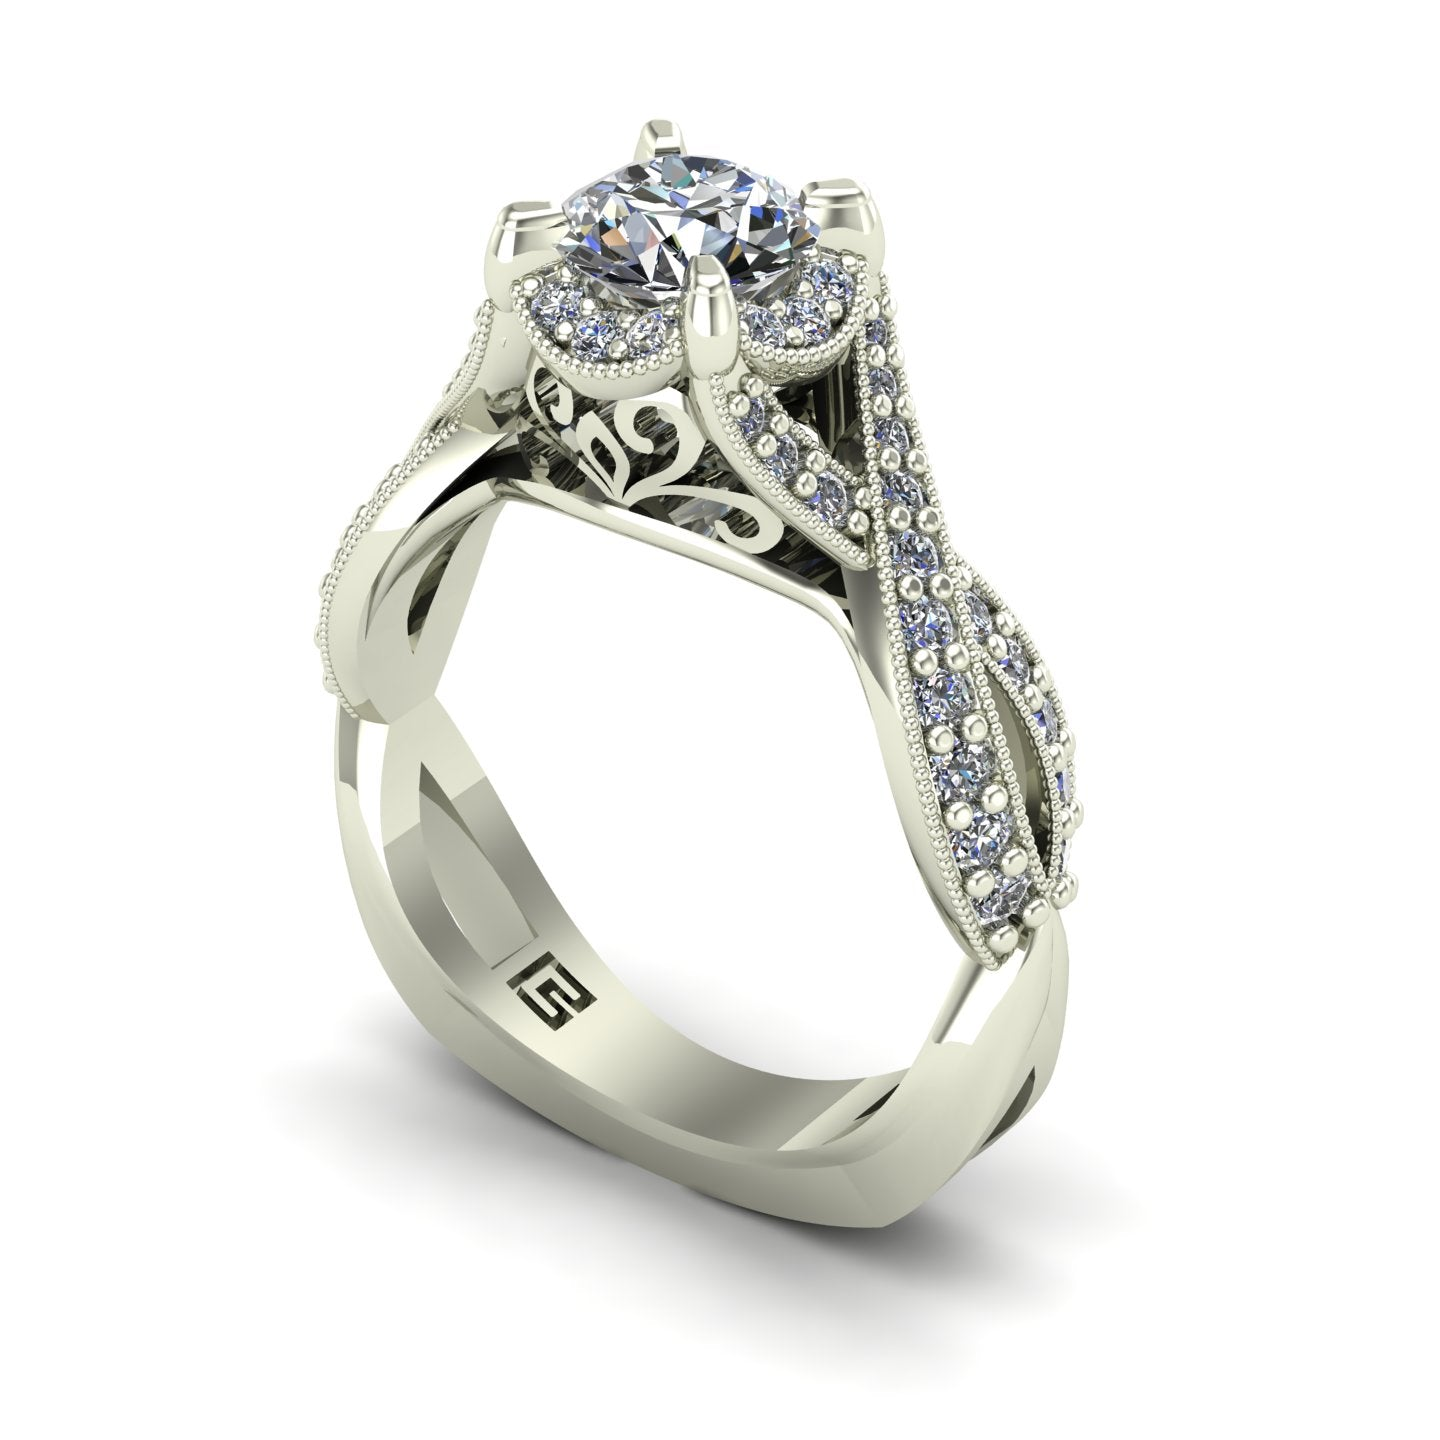 Diamond engagement ring with crossover shank in 14k white gold